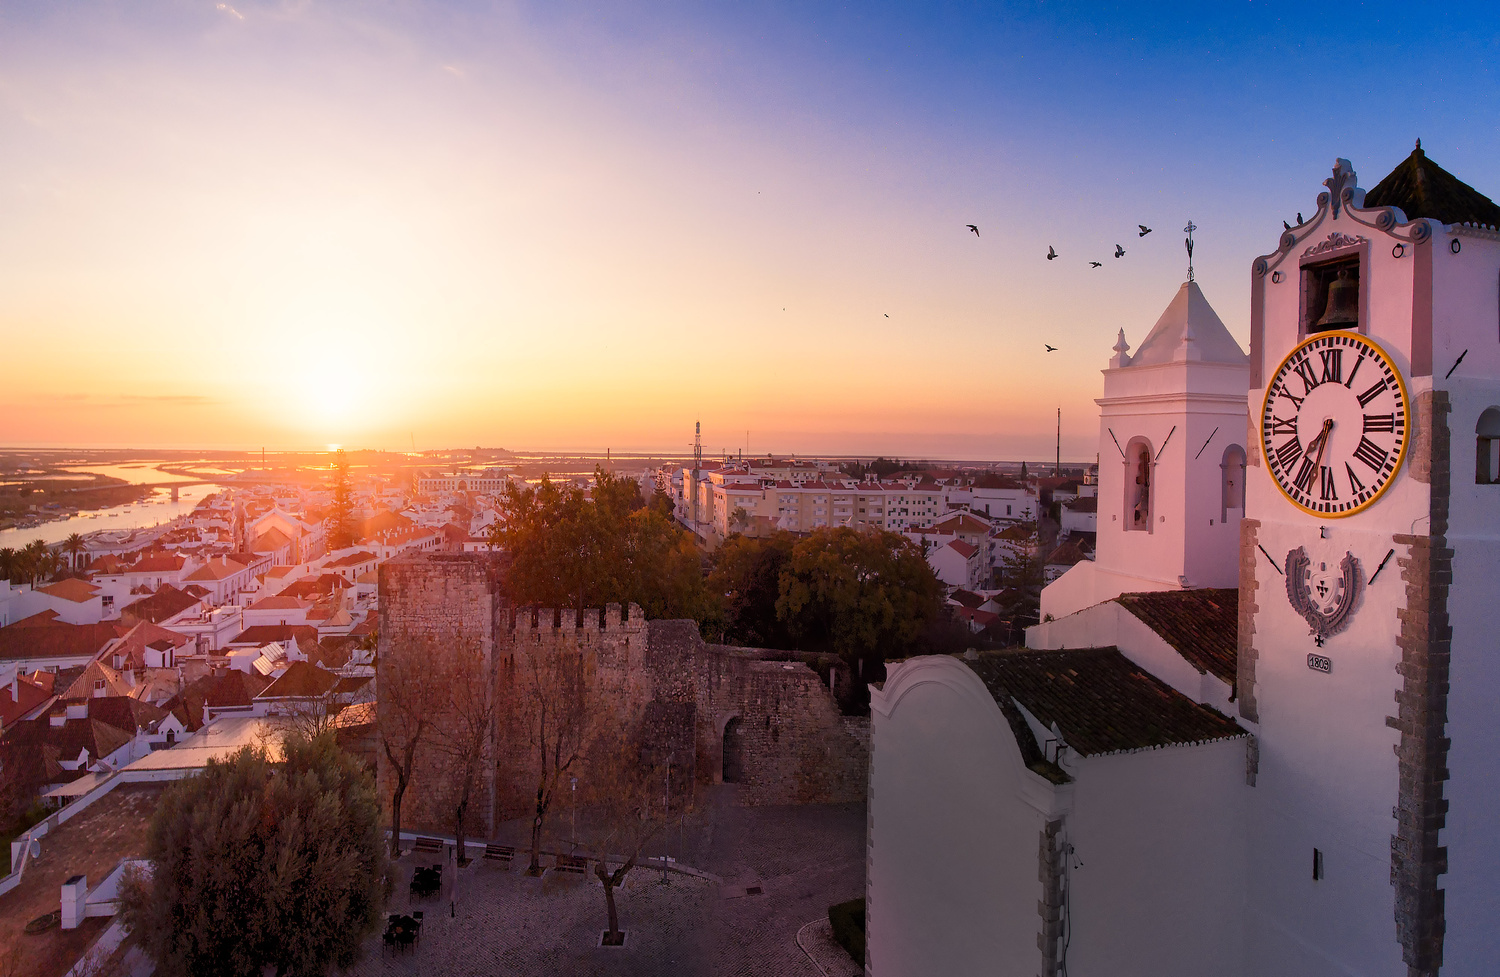 The sun rises on Tavira by Jerome Courtial